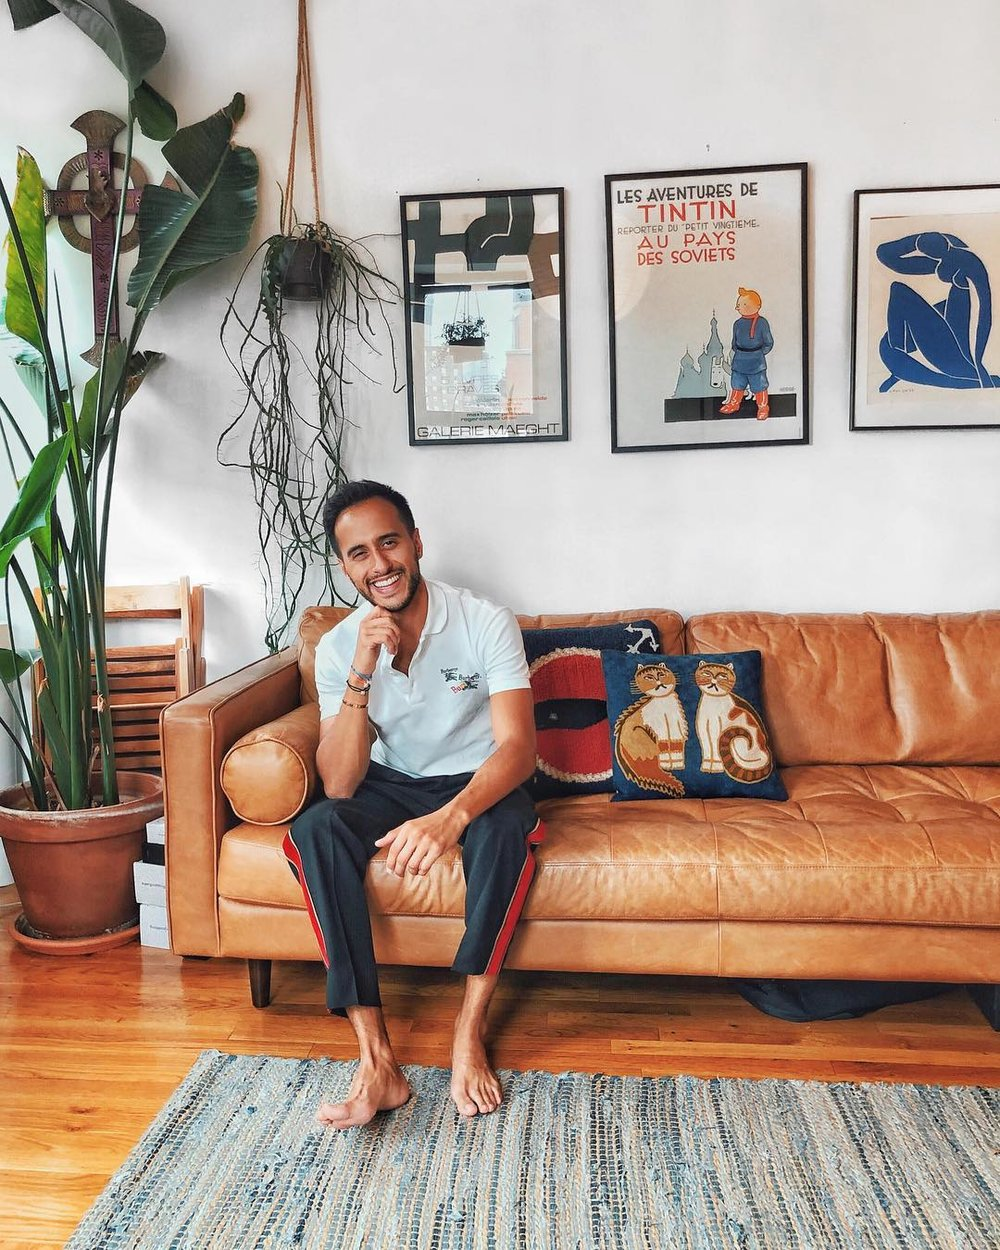 Moti Ankari    @motiankari  is a menswear blogger based in New York. His content consists of personal style, trend analysis, and travel. You may have seen him in GQ, Forbes, and Esquire. He's collaborated with Fohr on Fossil and Armani Beauty.